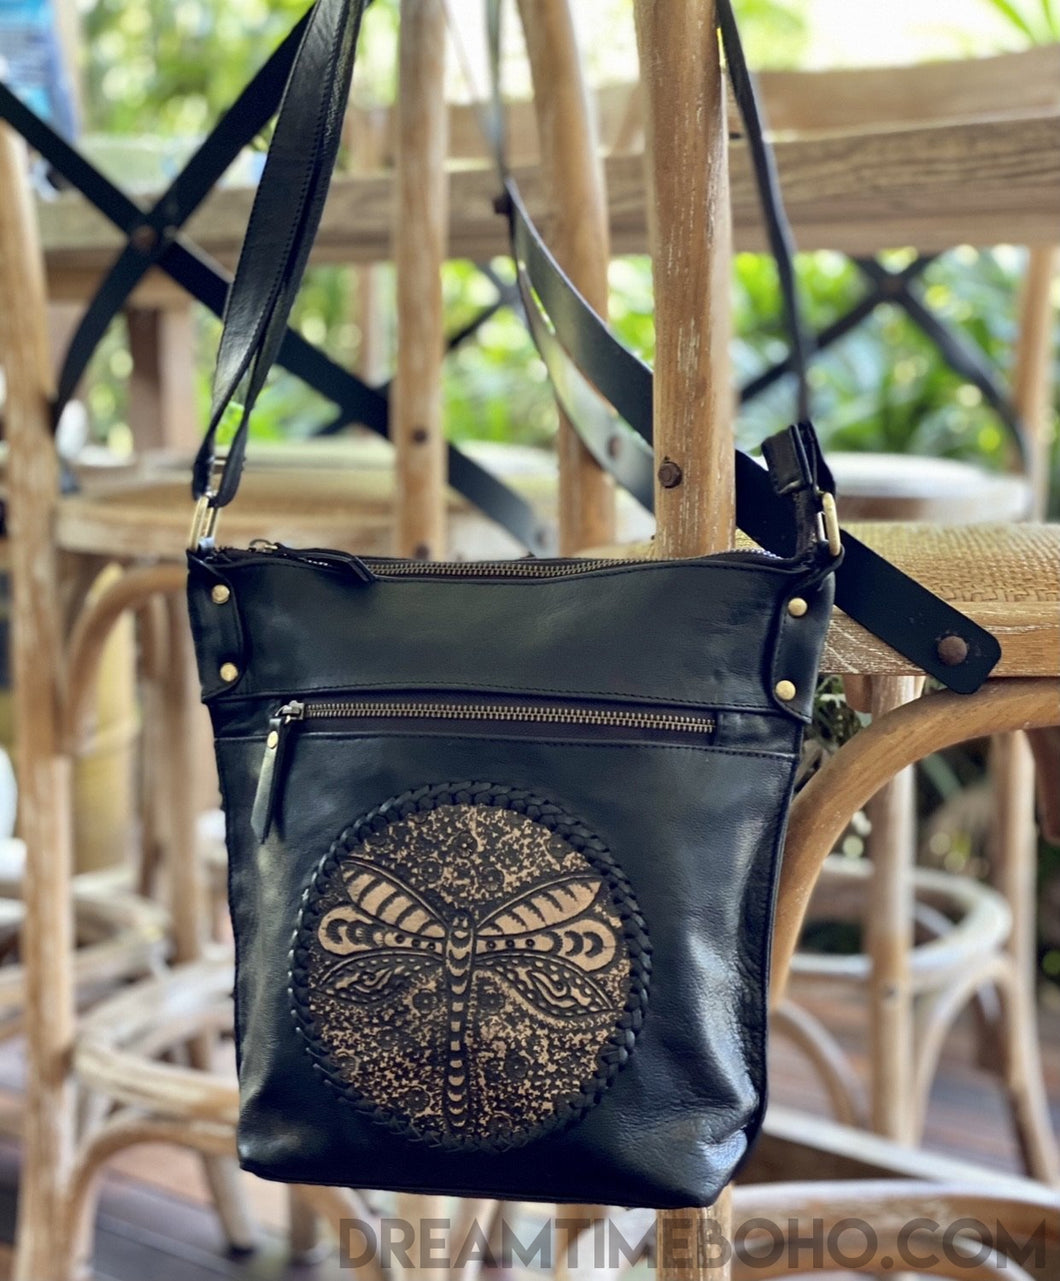 DRAGONFLY HAND TOOLED LEATHER CROSSBODY BOHO BAG-Leather Crossbody Bag-Dreamtime Boho-Dreamtime Boho